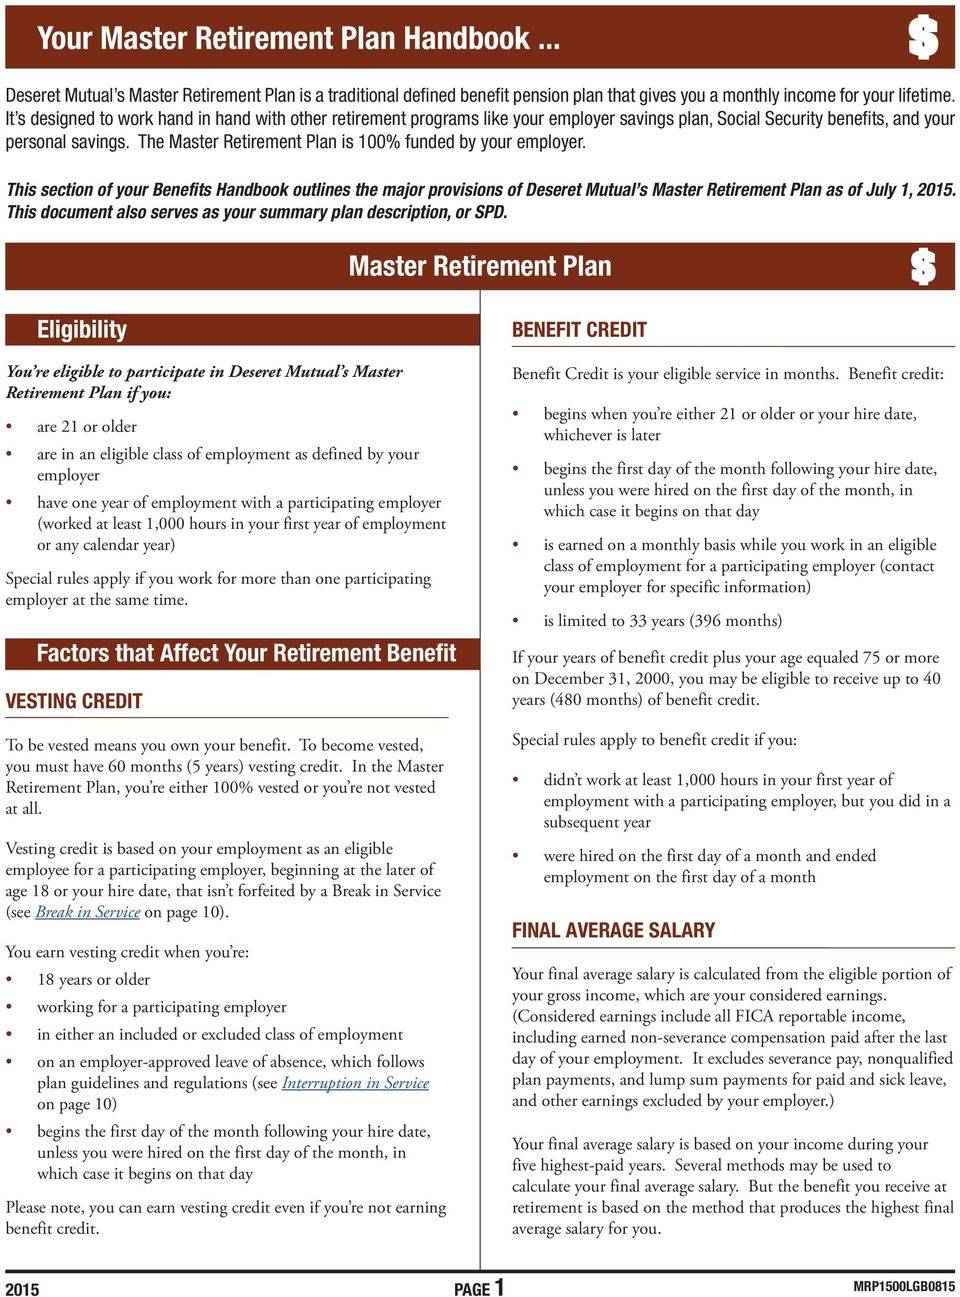 The Master Retirement Plan is 100% funded by your employer. This section of your Benefits Handbook outlines the major provisions of Deseret Mutual s Master Retirement Plan as of July 1, 2015.